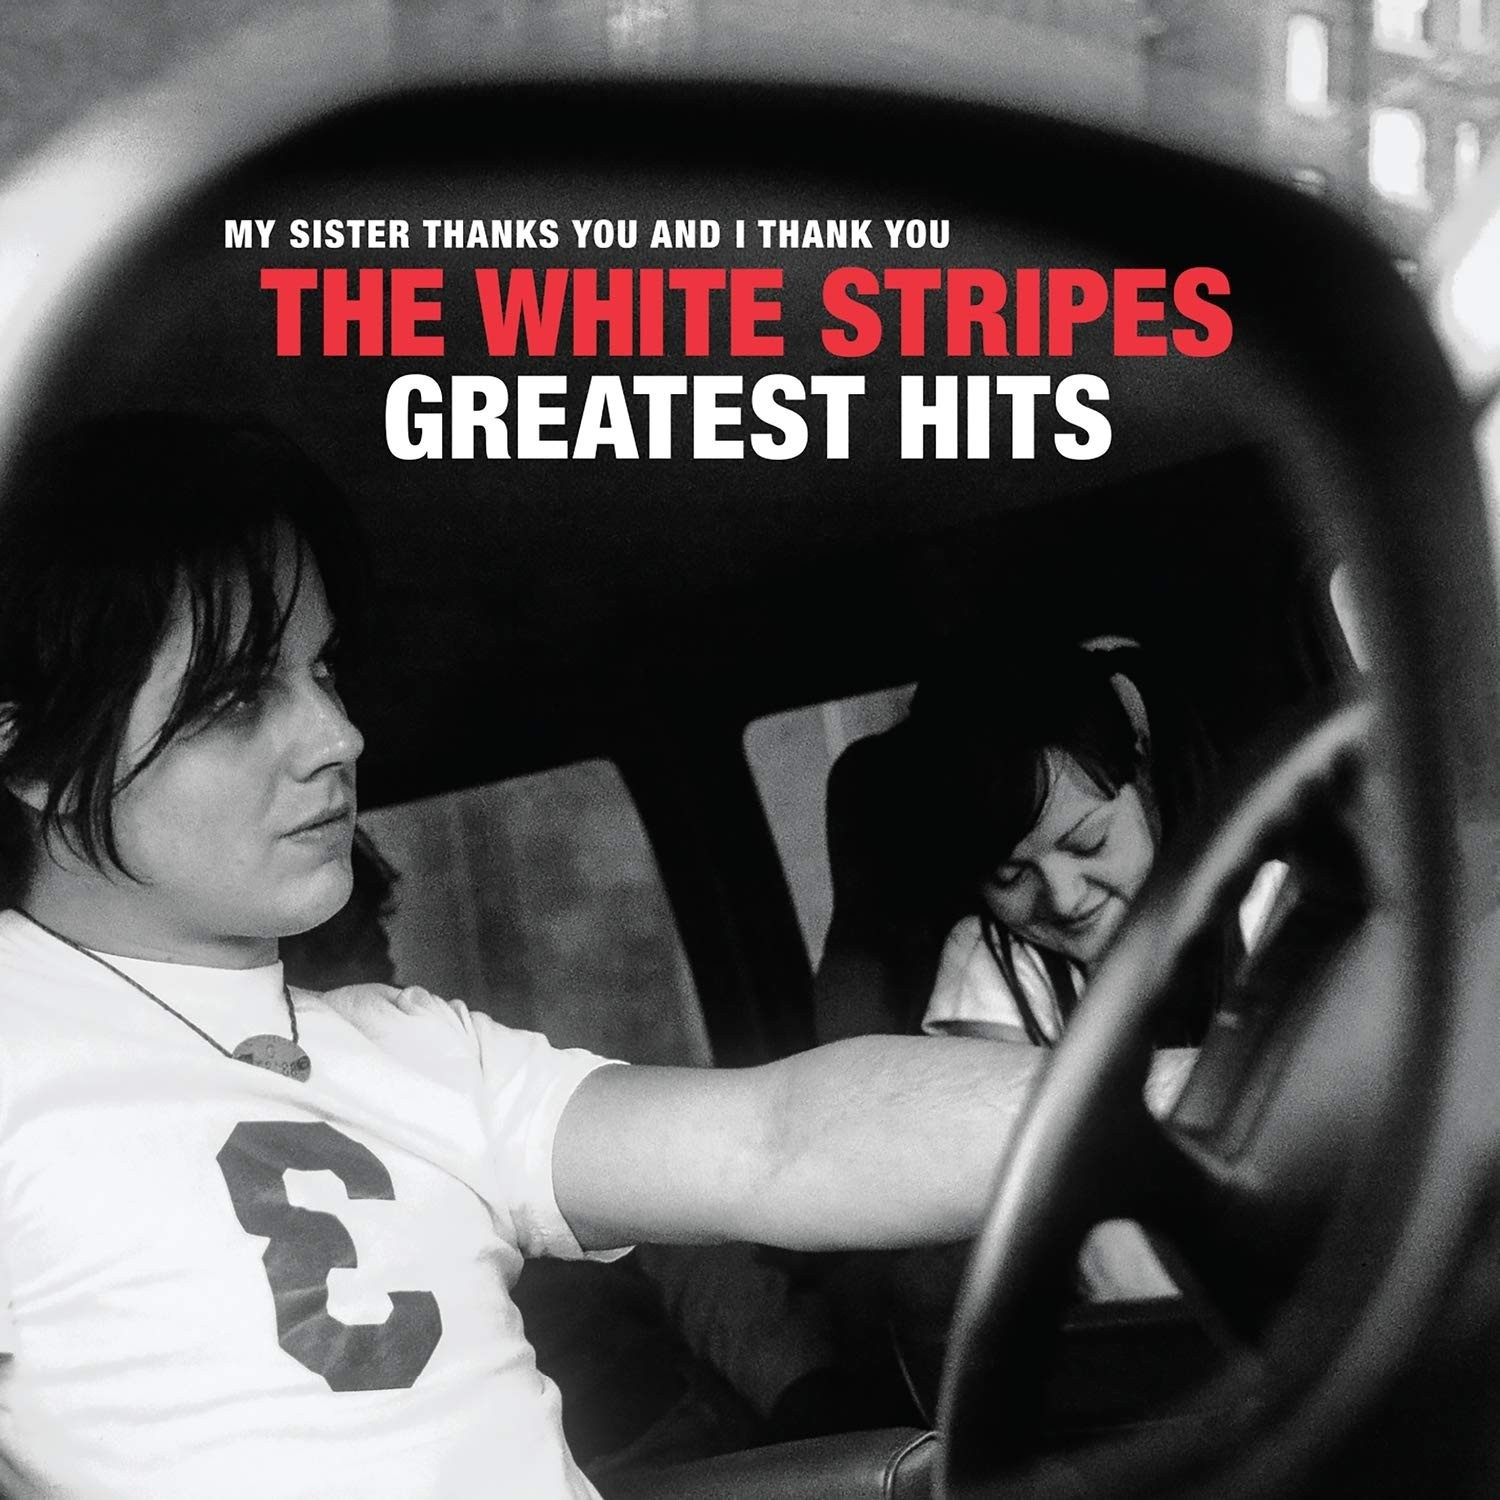 The White Stripes - The White Stripes Greatest Hits